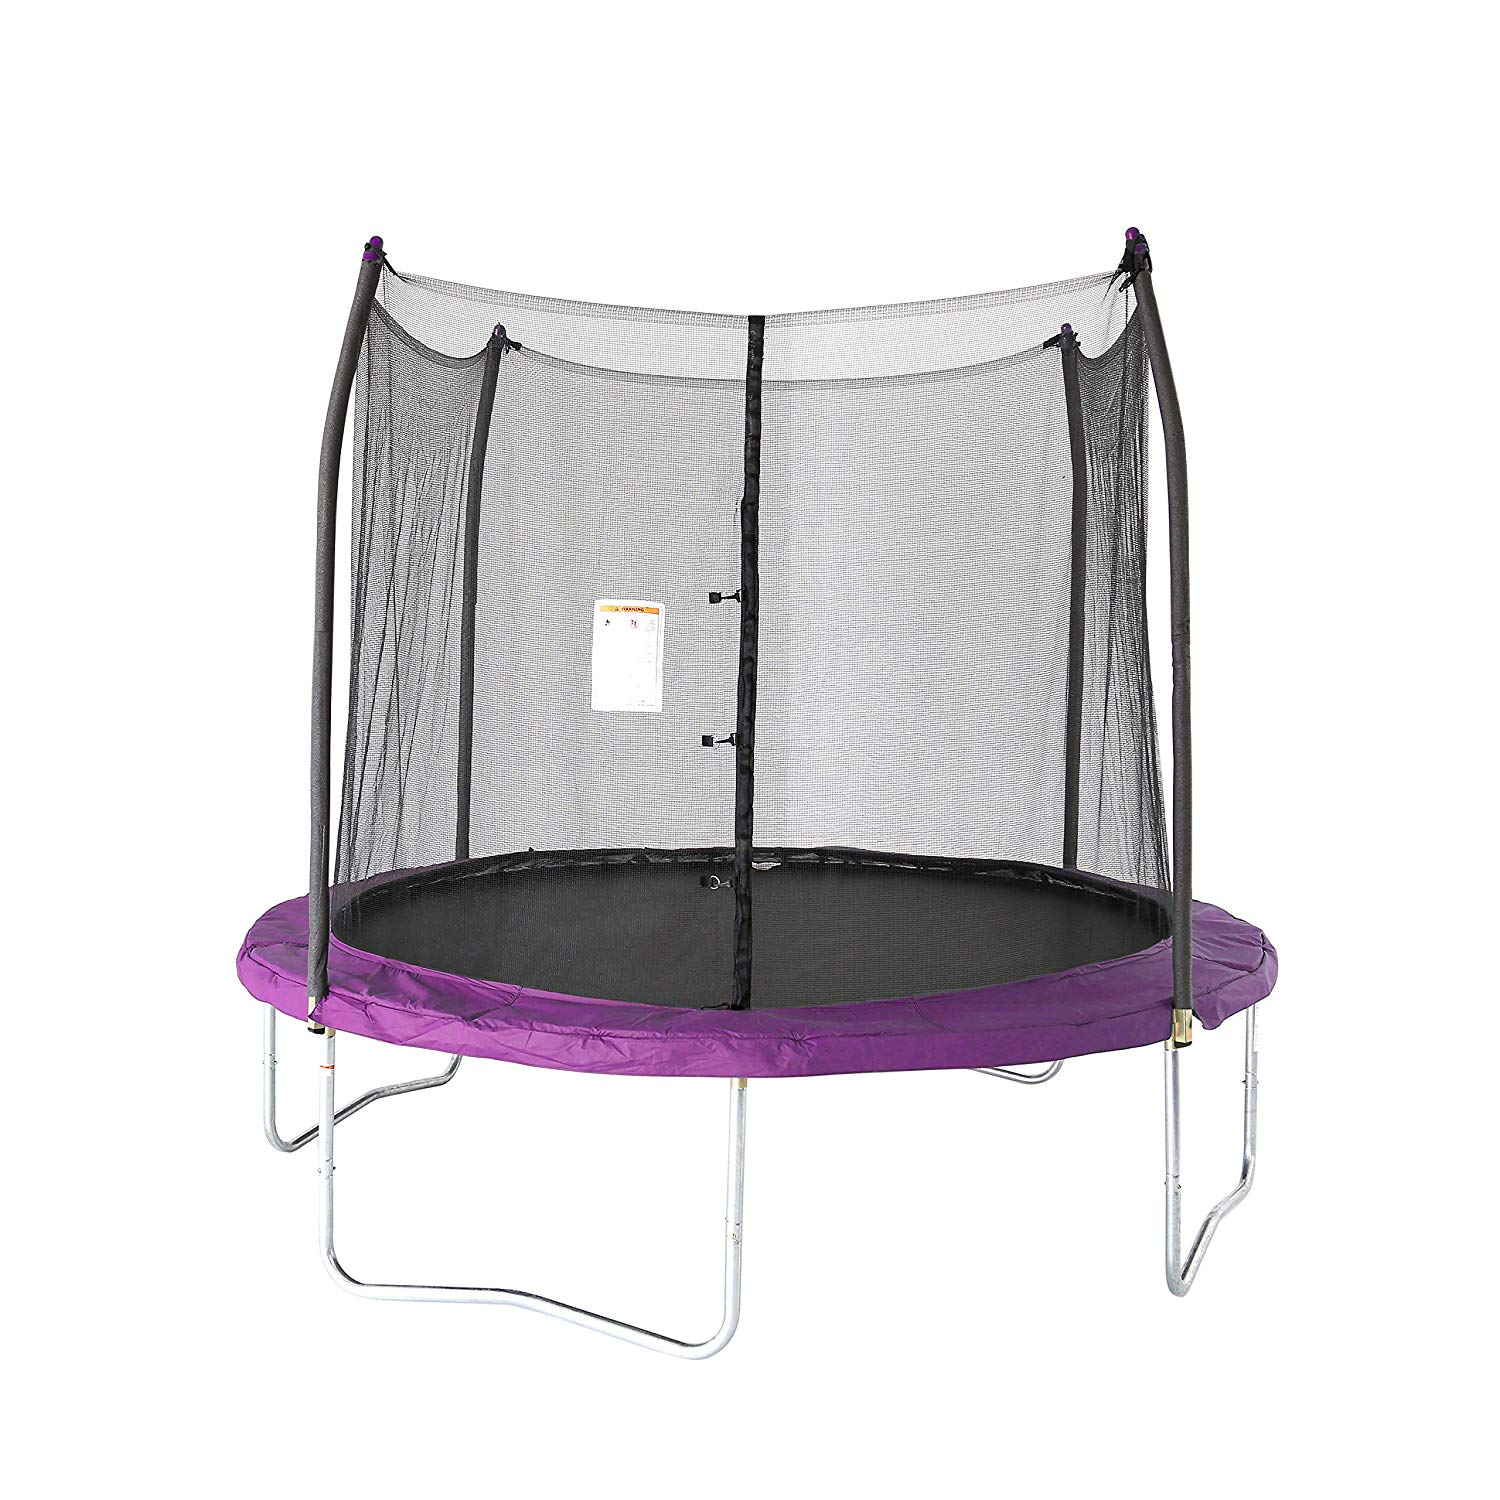 10ft trampoline review